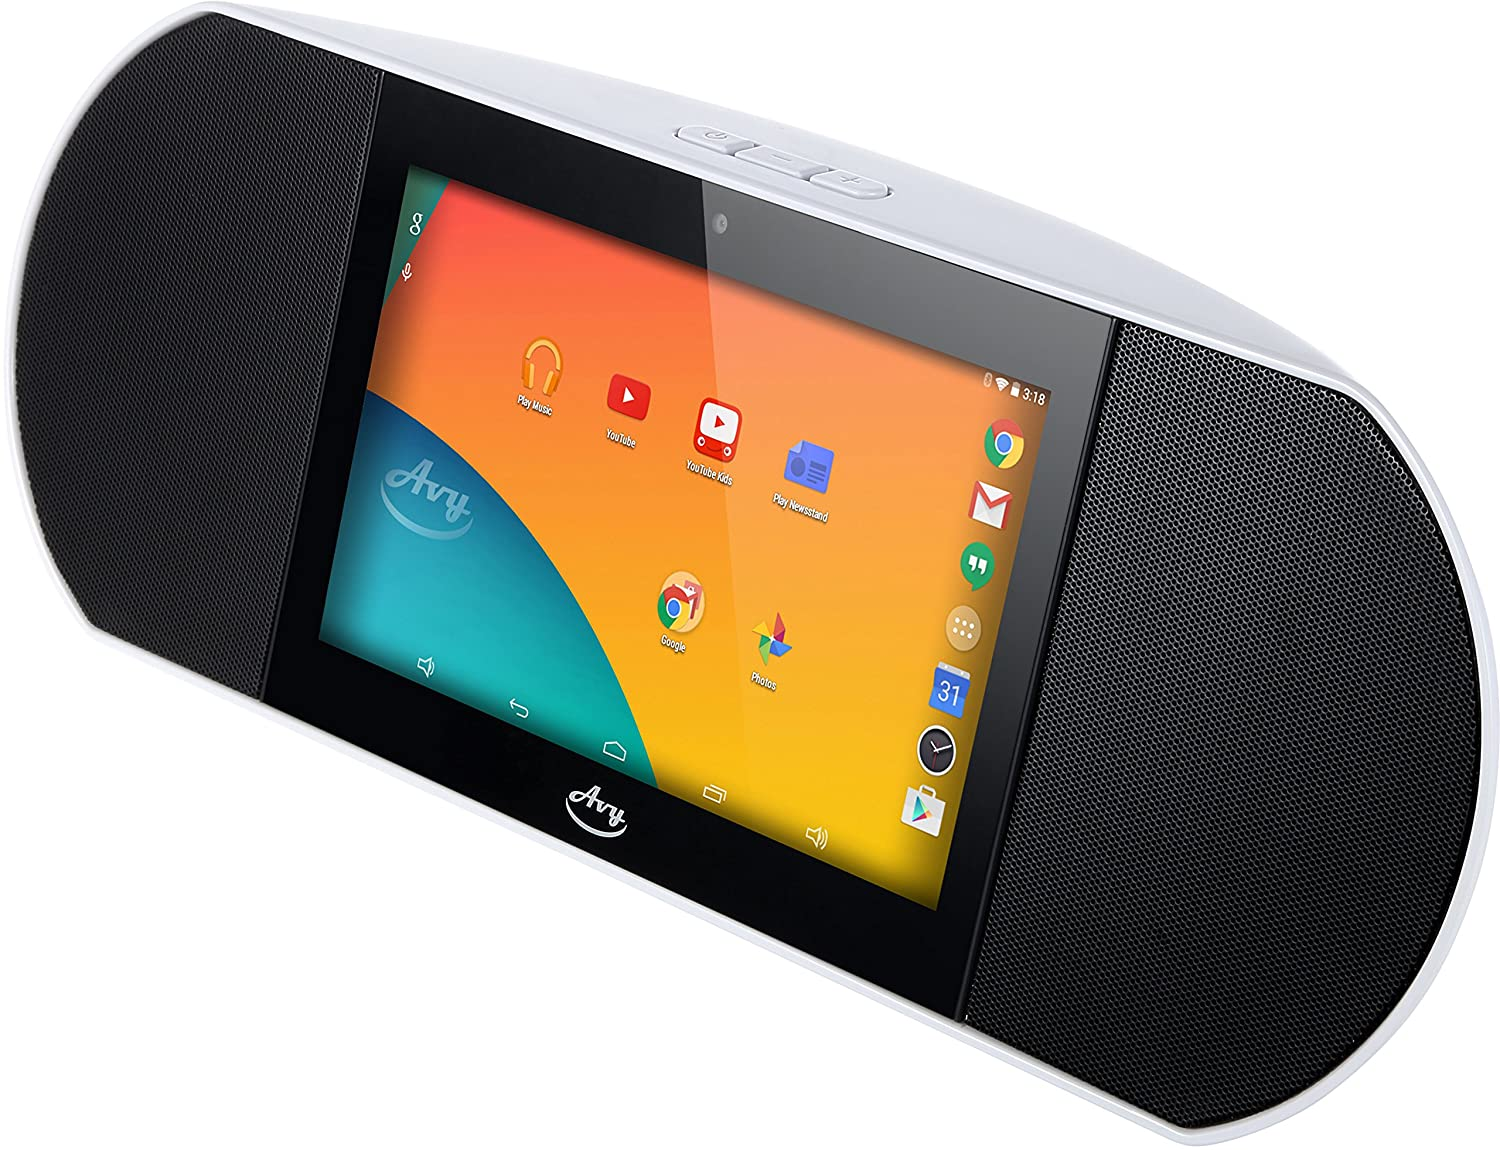 Zettaly Avy Wireless Smart Speaker (White), WiFi Internet Radio Powered By Android 4.4 Kitkat with Built-in 7 Inch Quad Core Tablet and Google Play